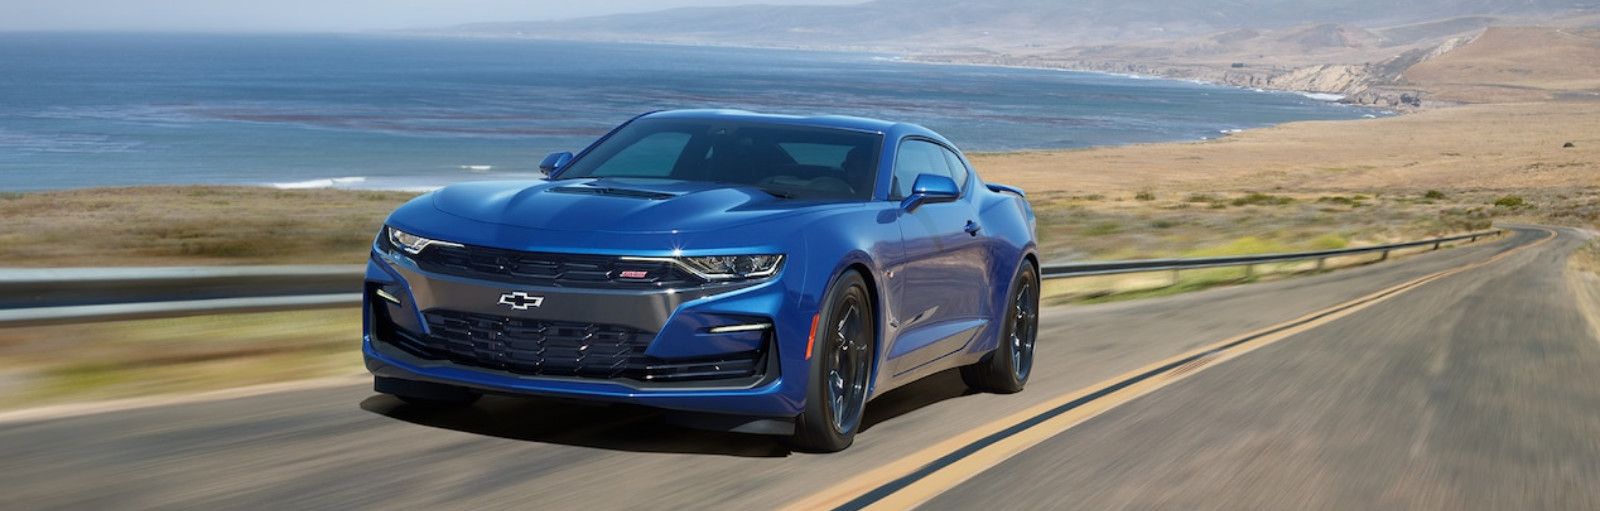 2019 Chevrolet Camaro Features and Benefits near North County, CA